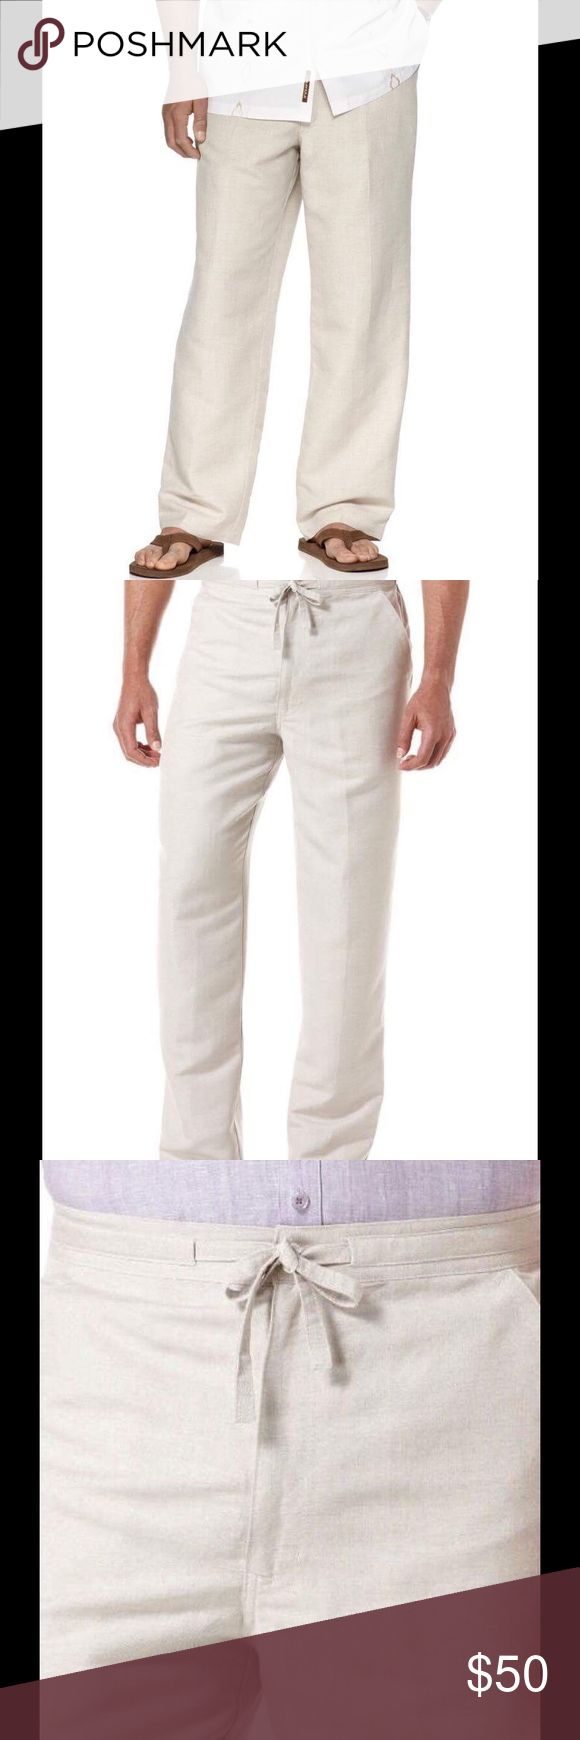 Cubavera men's natural linen pants size 52 NWT Cubavera men's natural linen pants. Elastic waistband with drawstring at front. Full cut leg for fluidity offers ease of movement and comfort. Size 5x inseam is 32, Cubavera Pants Chinos & Khakis